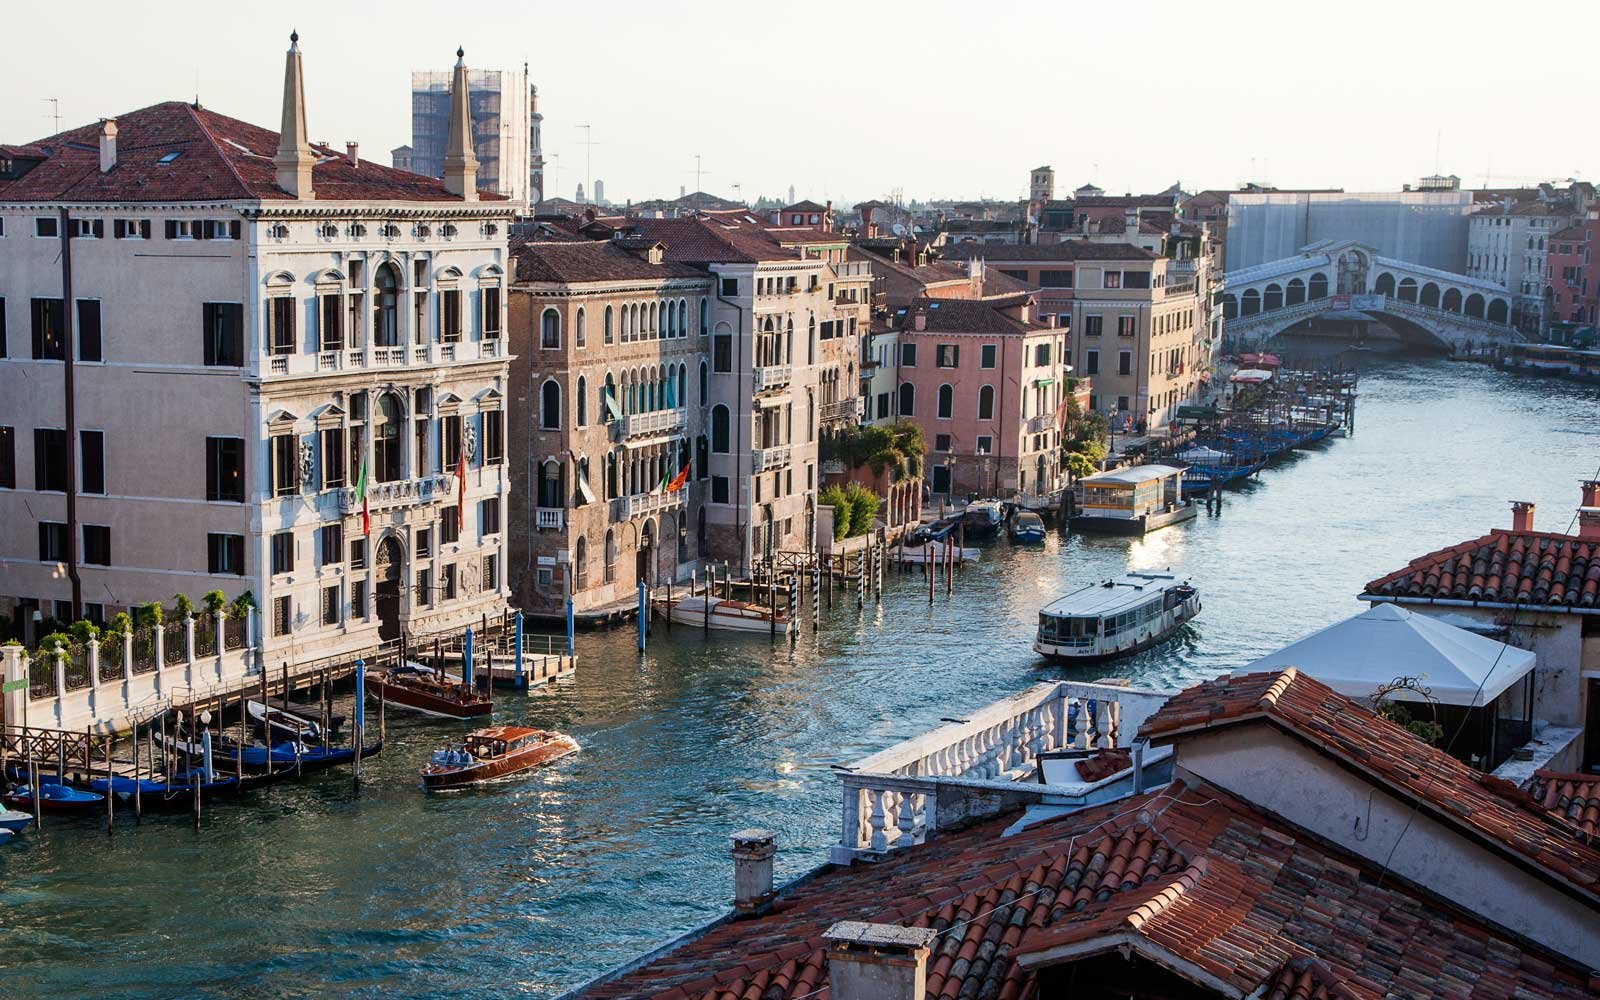 The Top Hotels in Venice